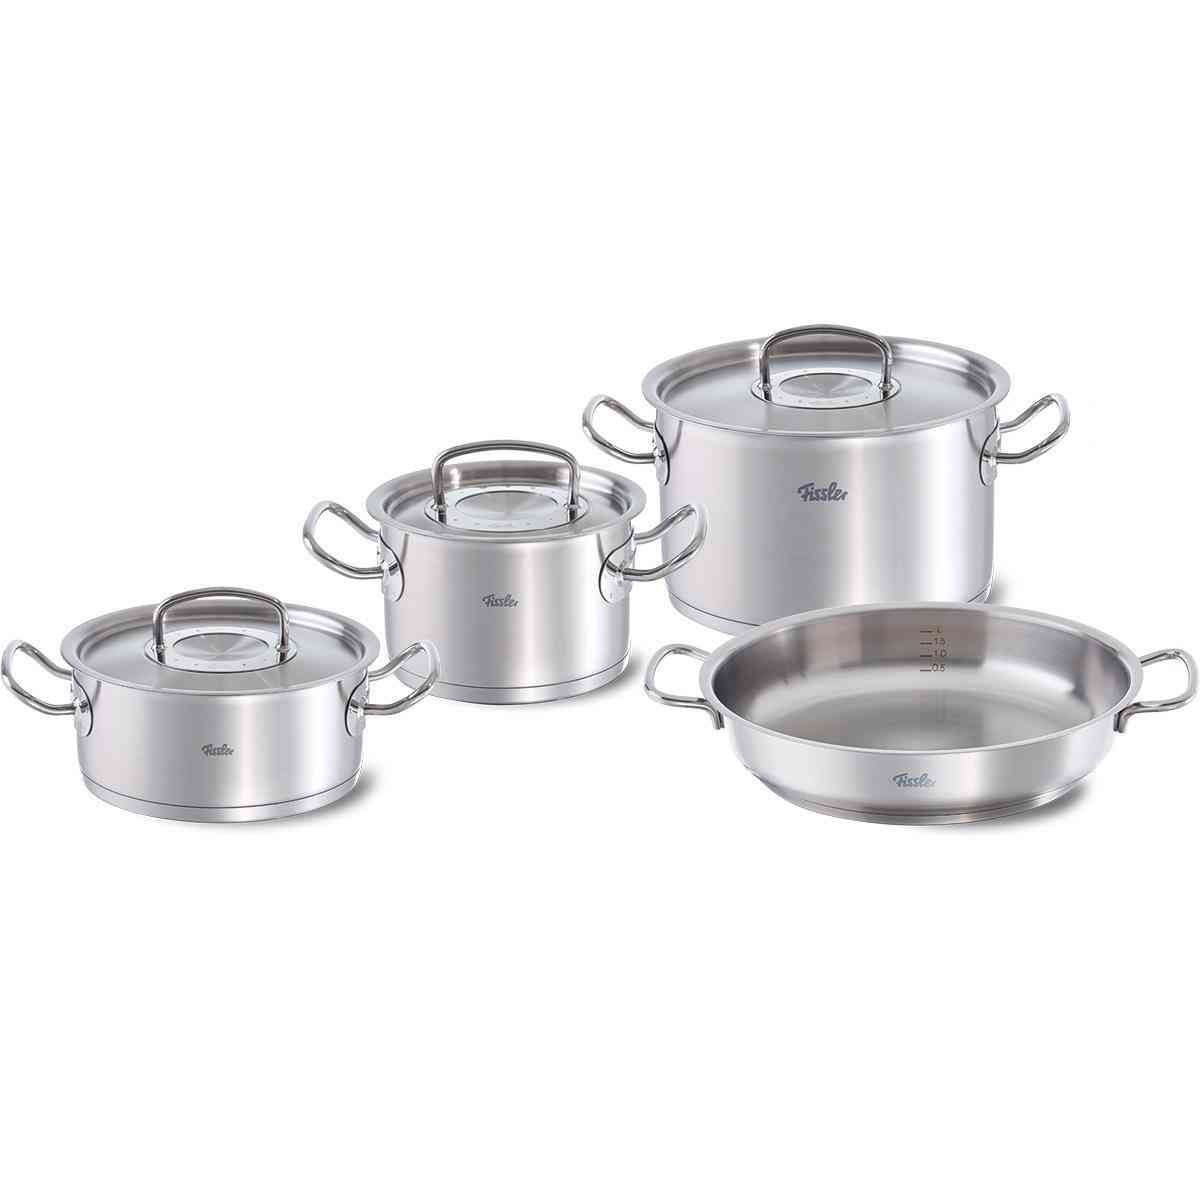 Fissler Original Profi Collection Topf Set 4 Tlg Fissler Shop Fissler